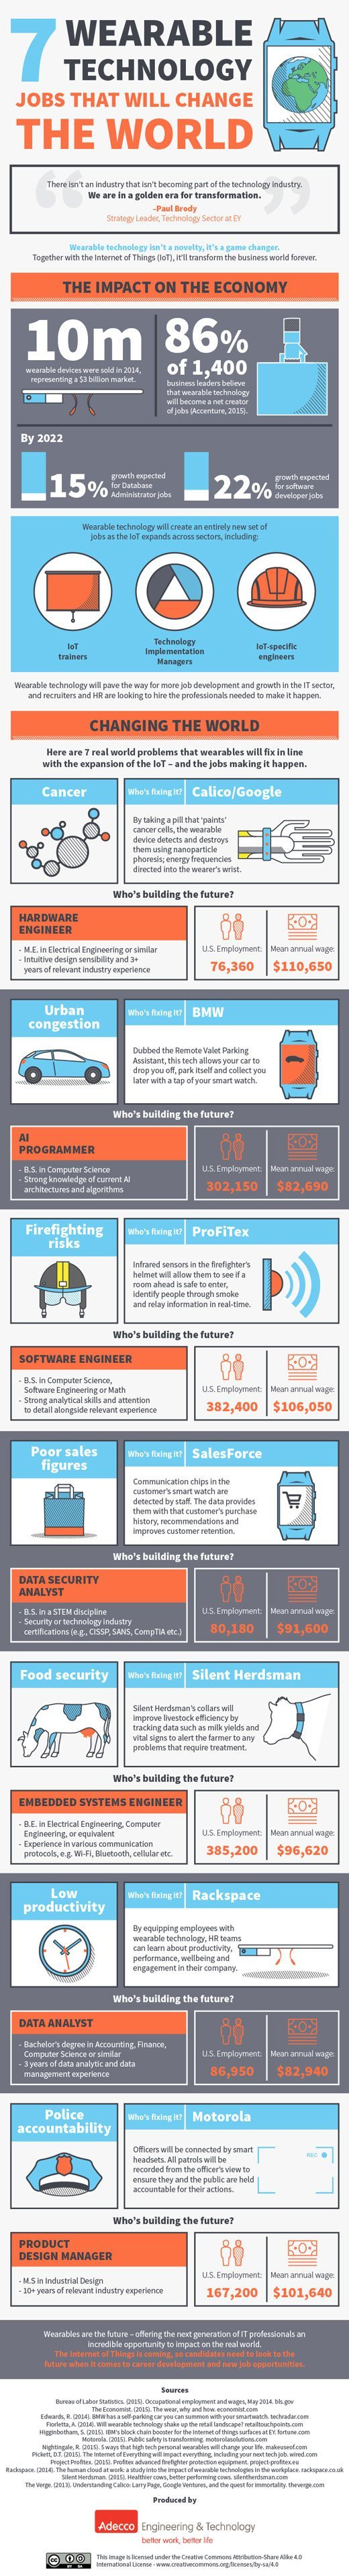 wearable-tech-jobs